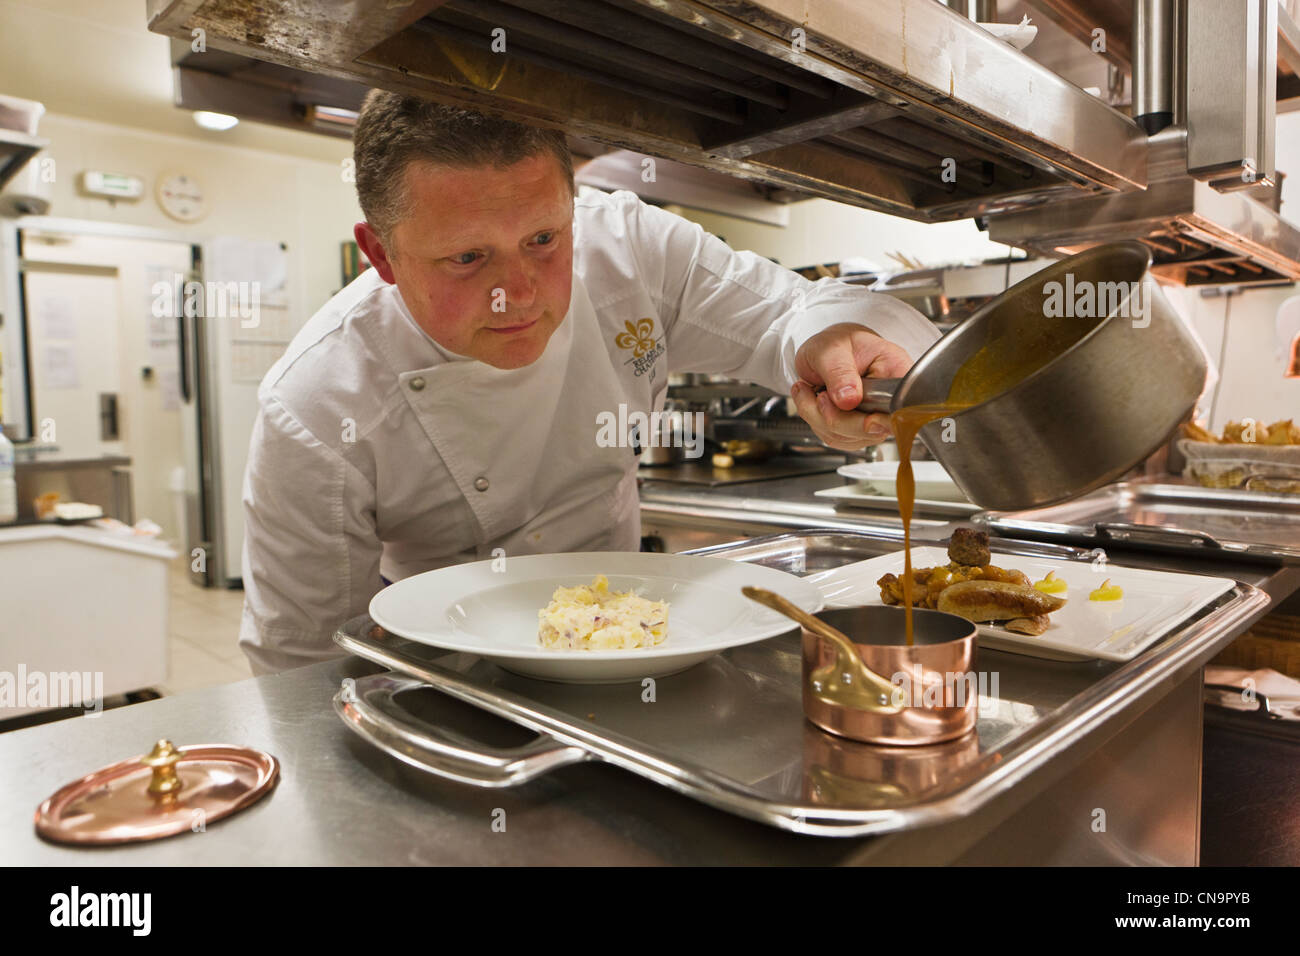 France, Finistere, Roscoff, Loïc Le Bail, chef at the Yachtsman Hotel Brittany - Stock Image